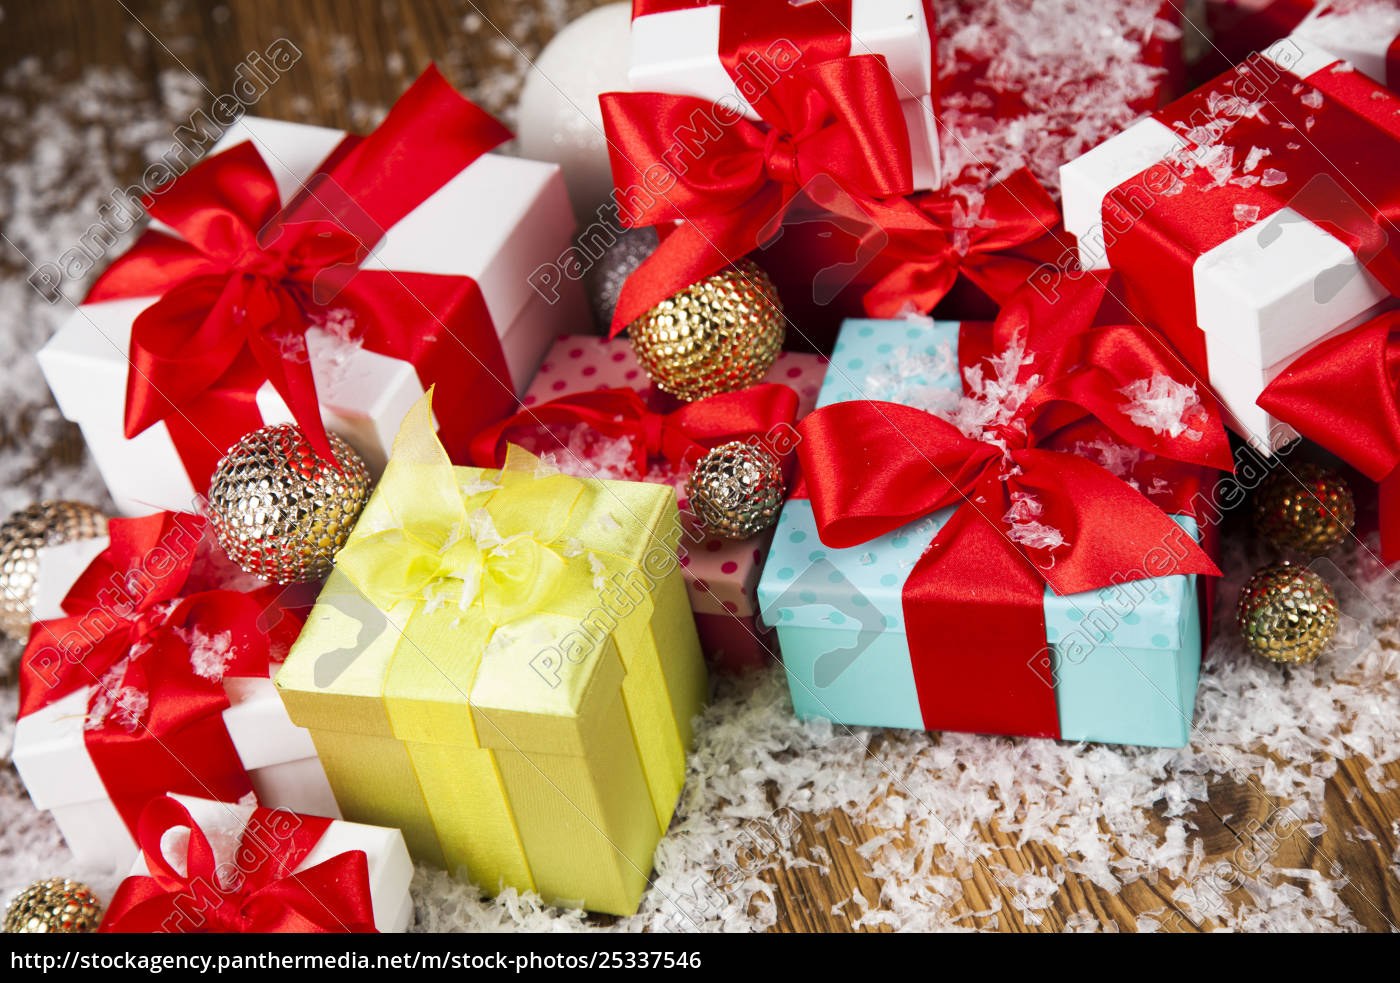 christmastime, celebration, , gift, box, with, red - 25337546